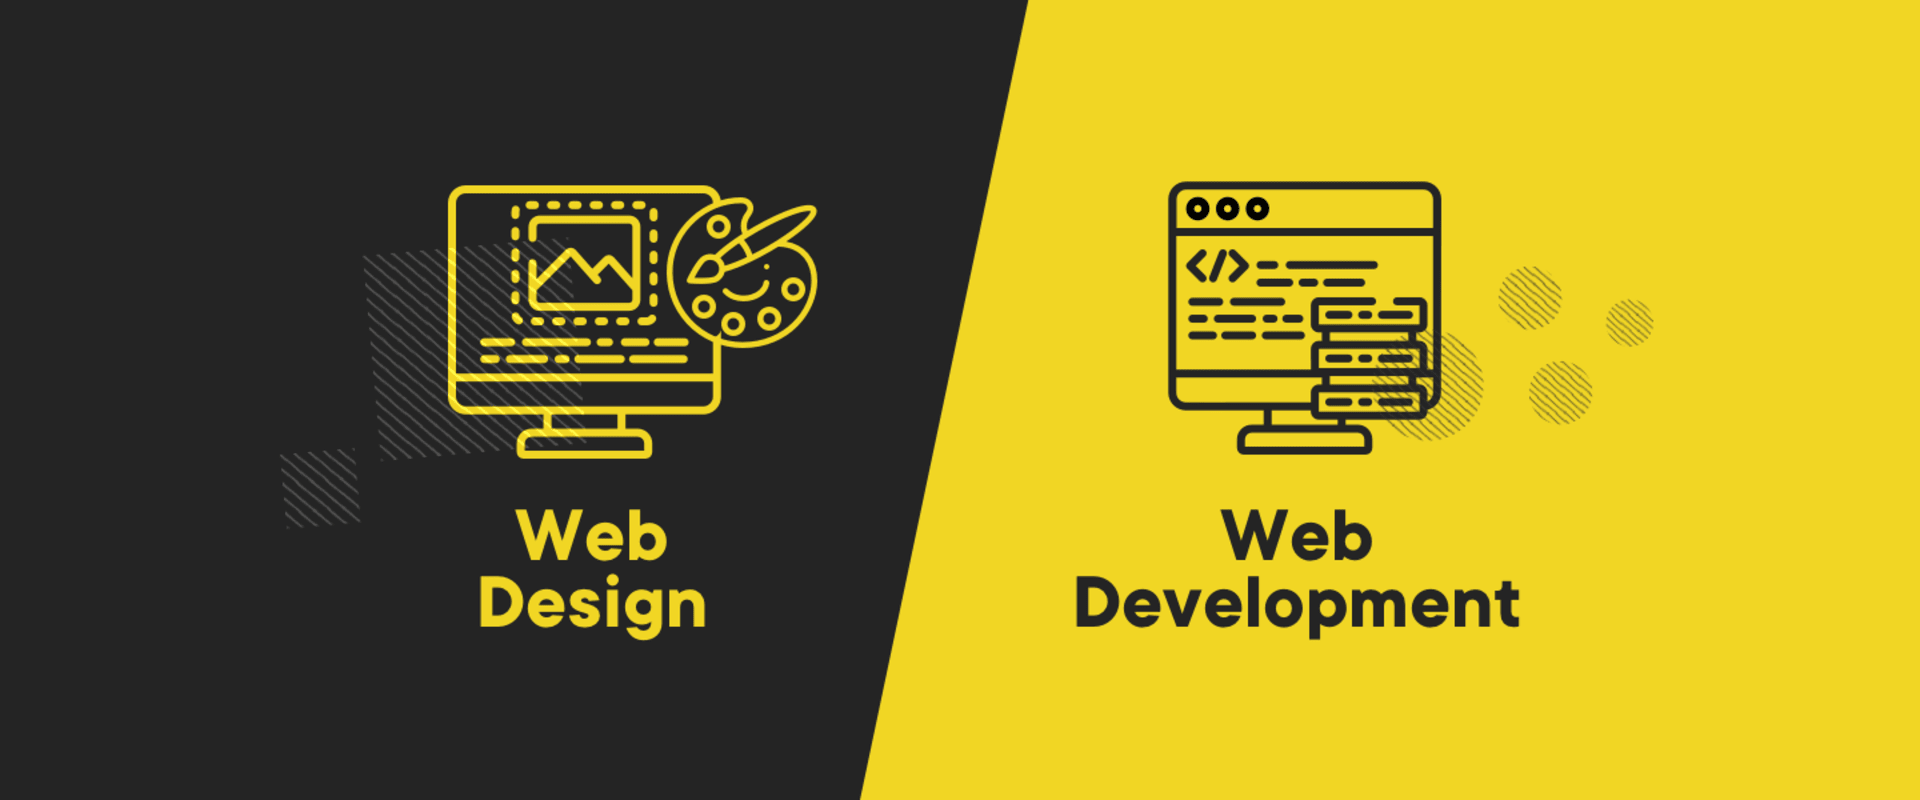 Web design vs. web development. What's the difference?